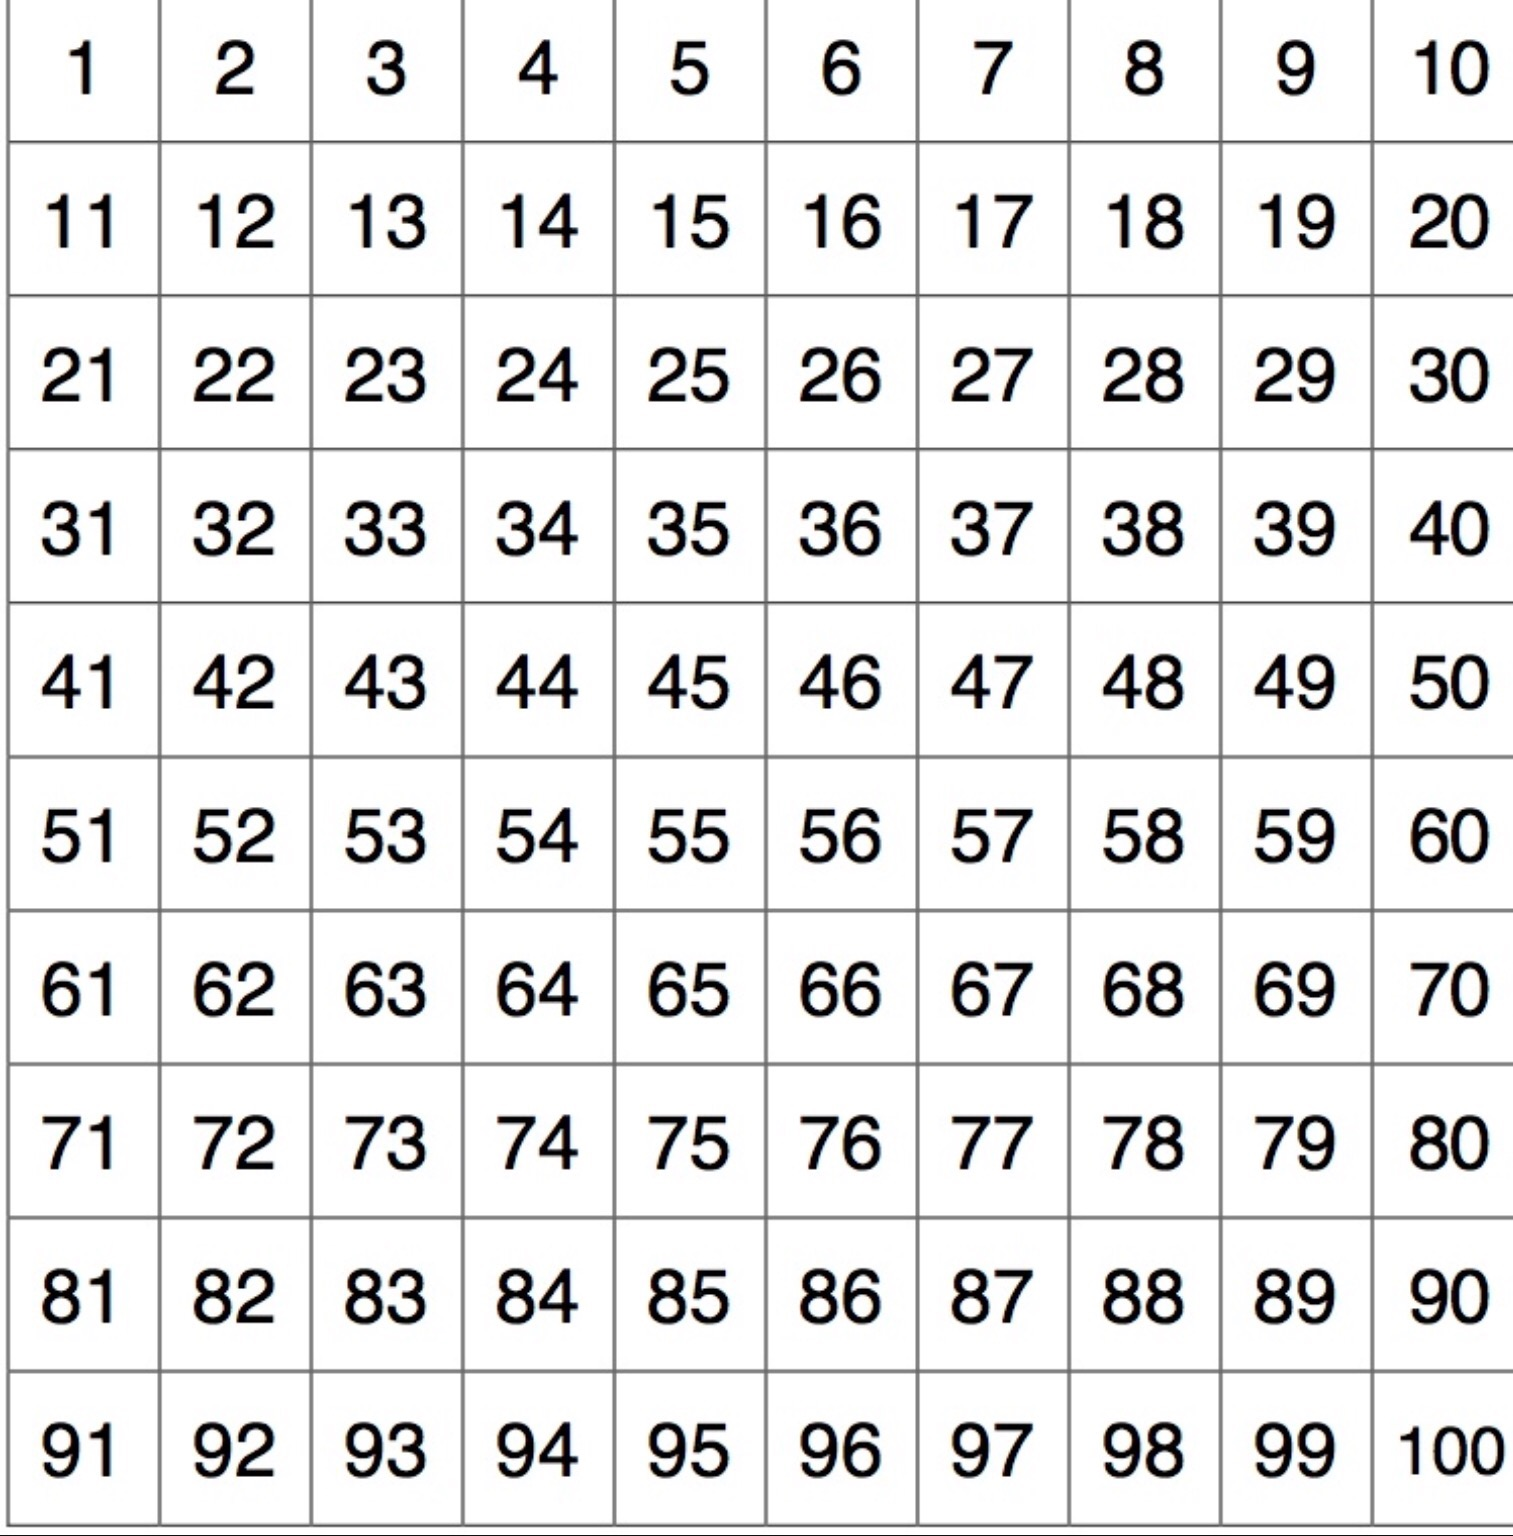 Maths Game 1 To 100 Grid